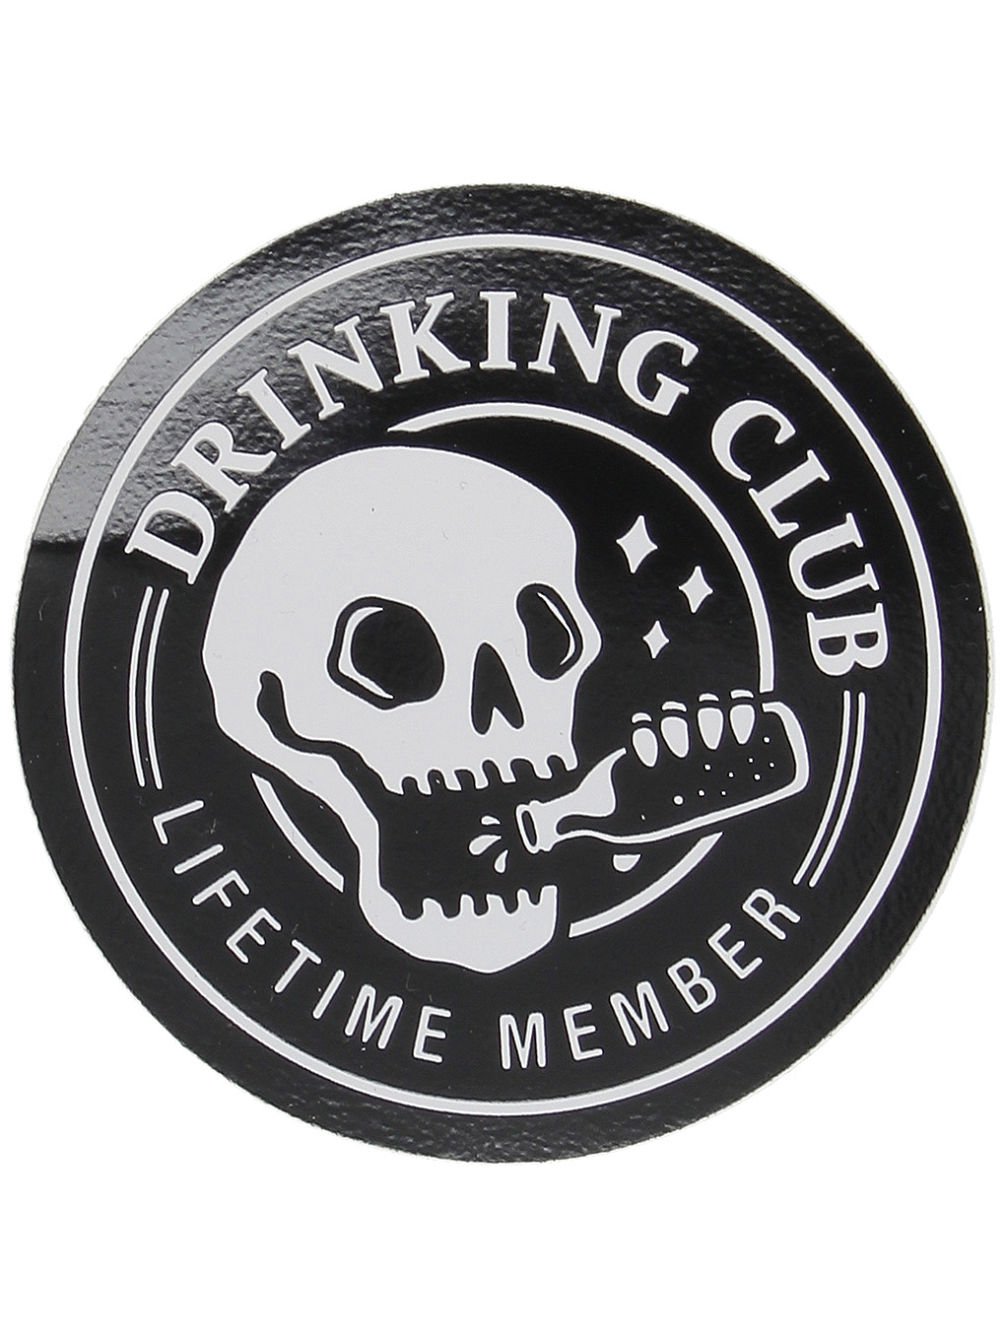 Drinking Club Sticker